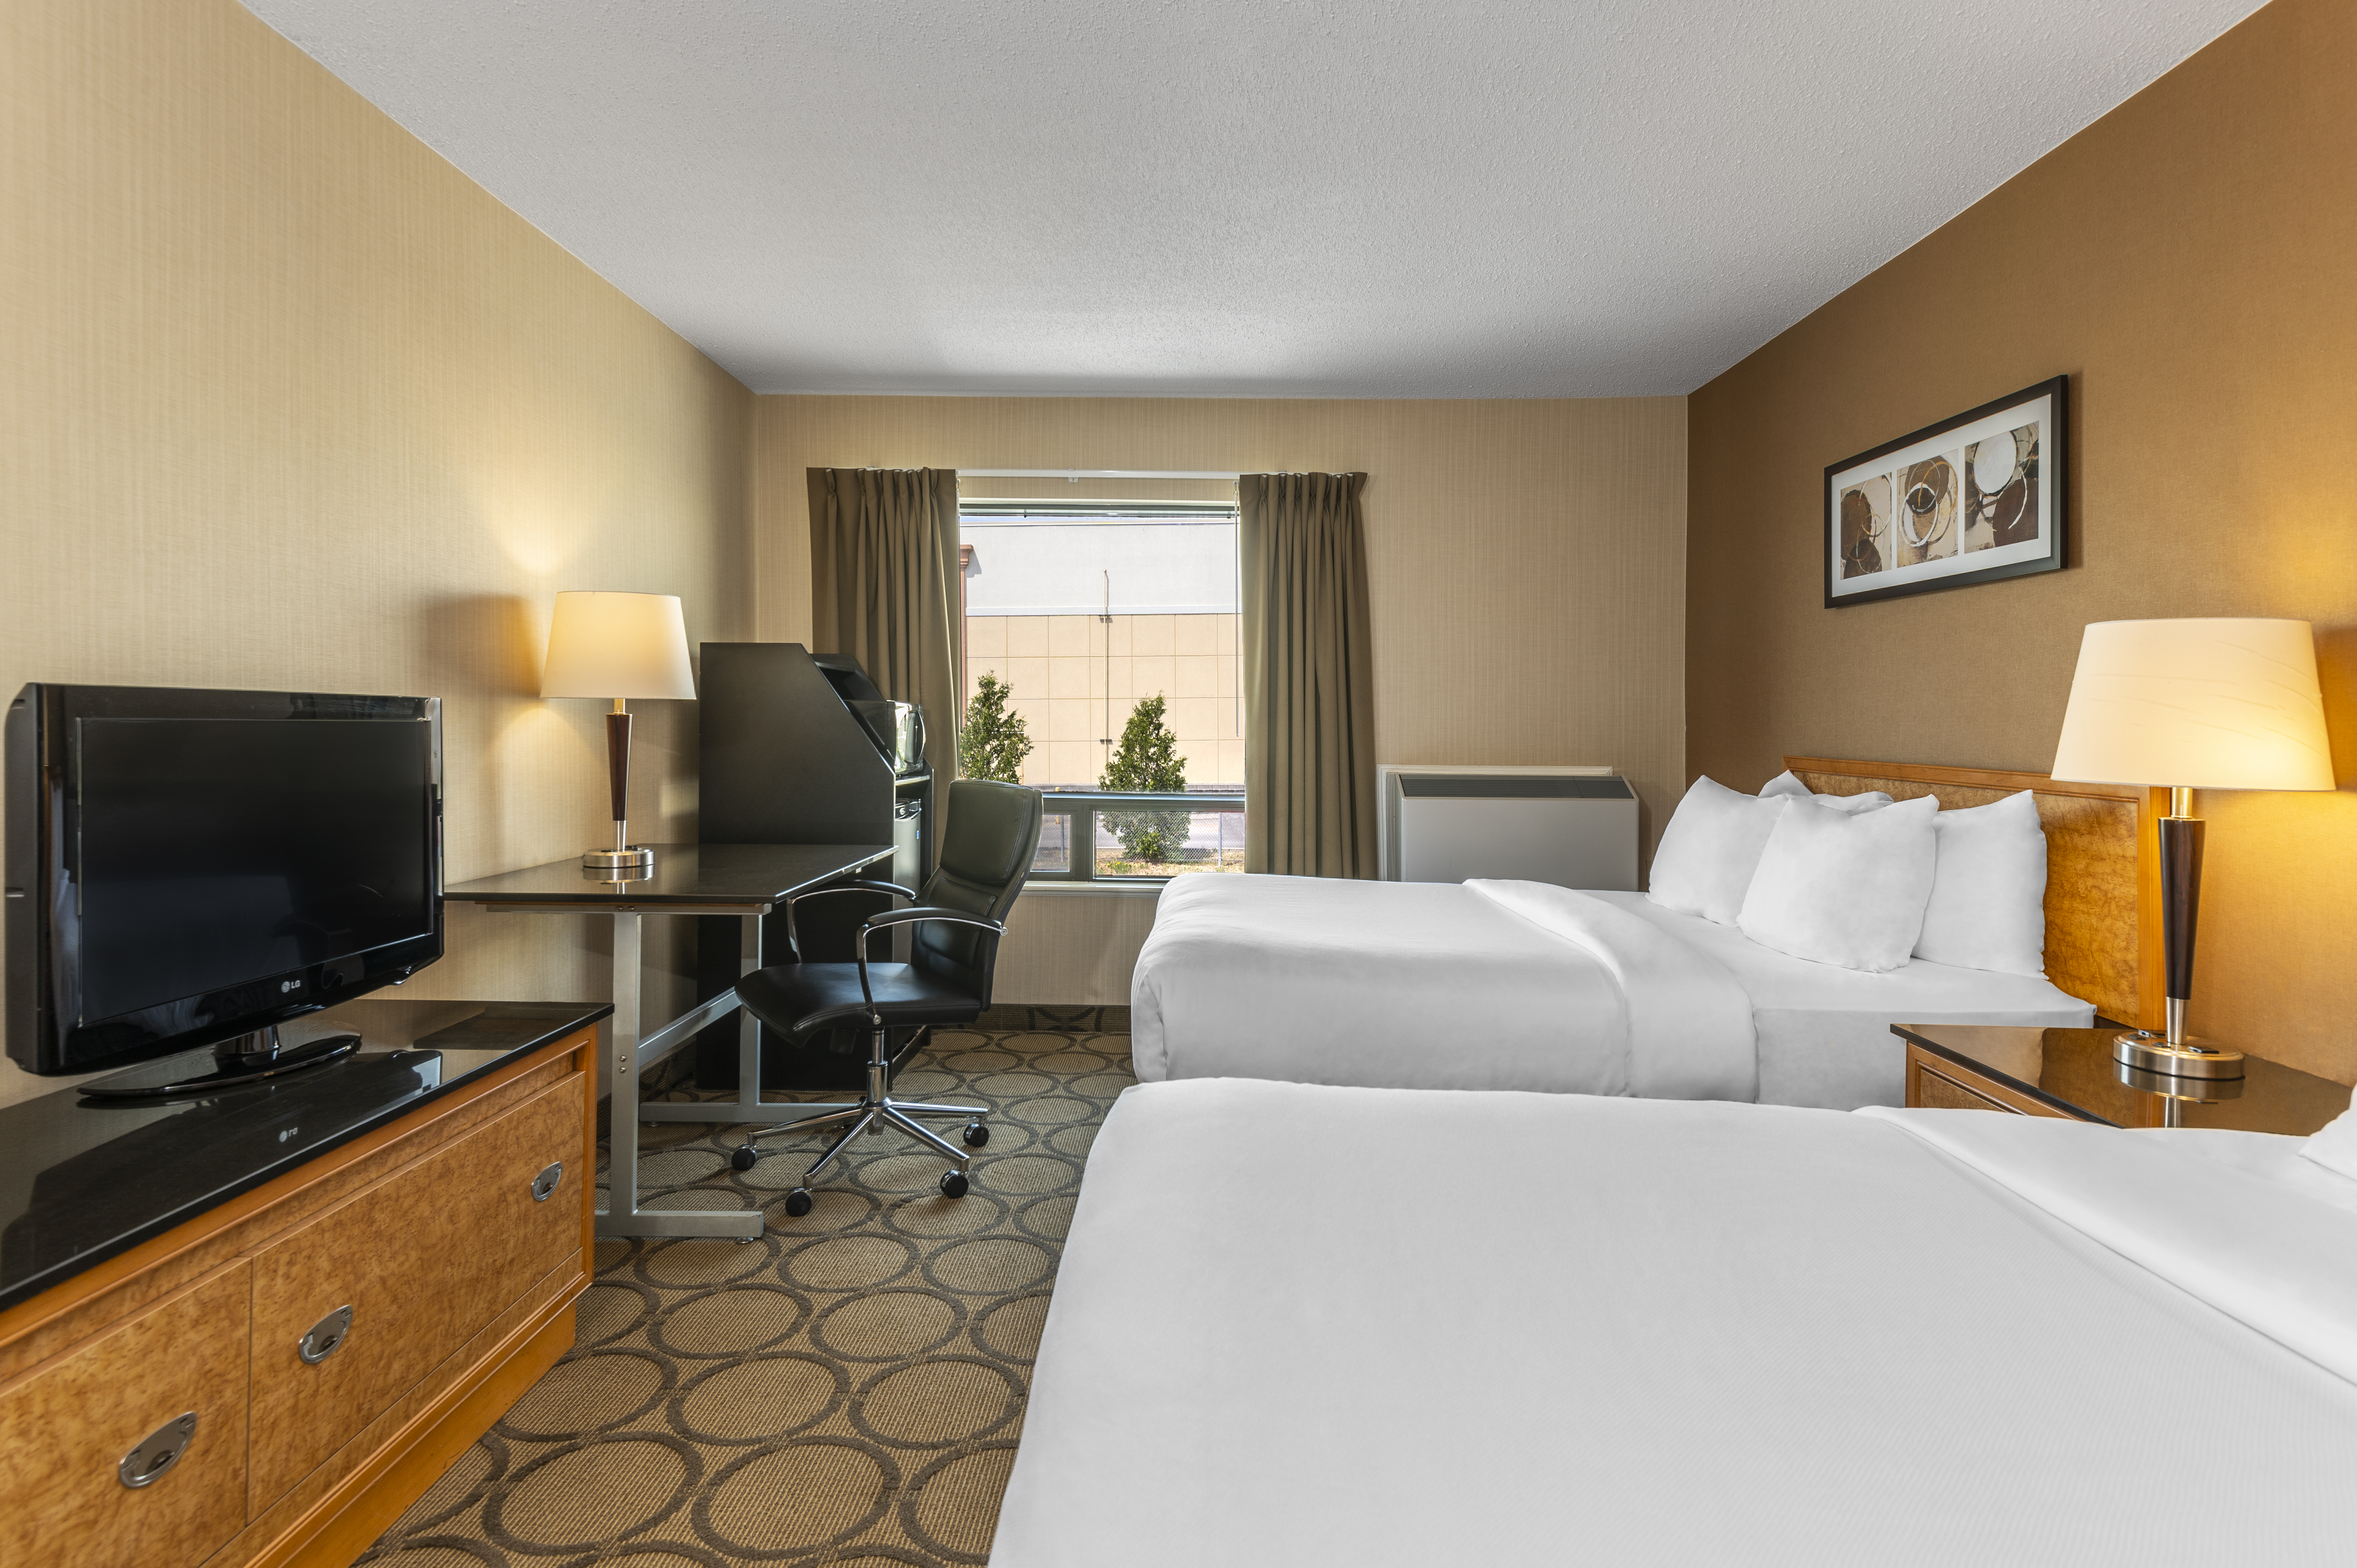 https://www.hotelsbyday.com/_data/default-hotel_image/5/26071/guestroom-with-two-pillowtop-beds-upper-flr.jpg